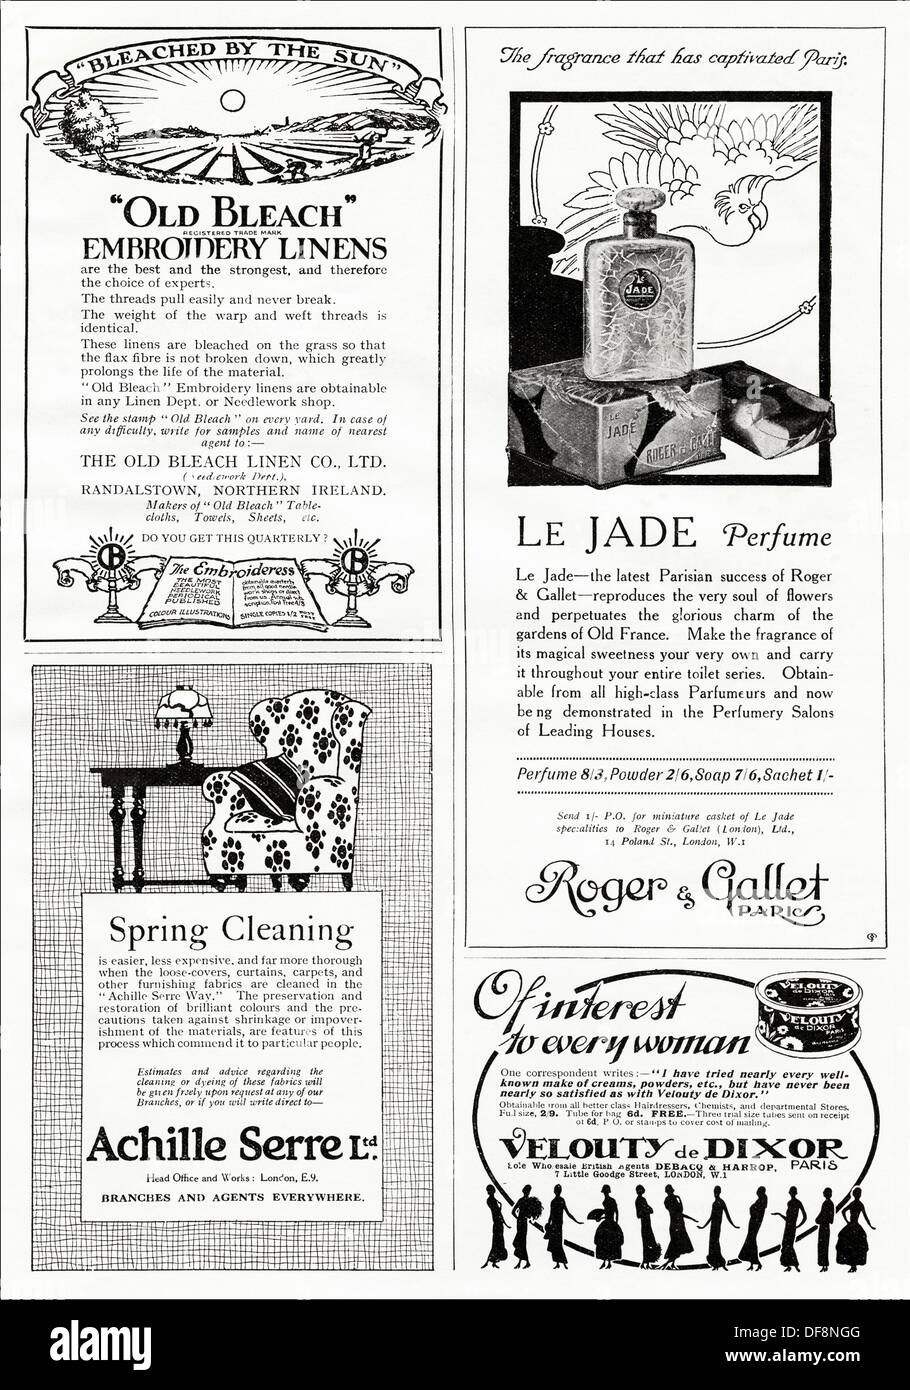 Page of ads  Original 1920s advertisements advertising